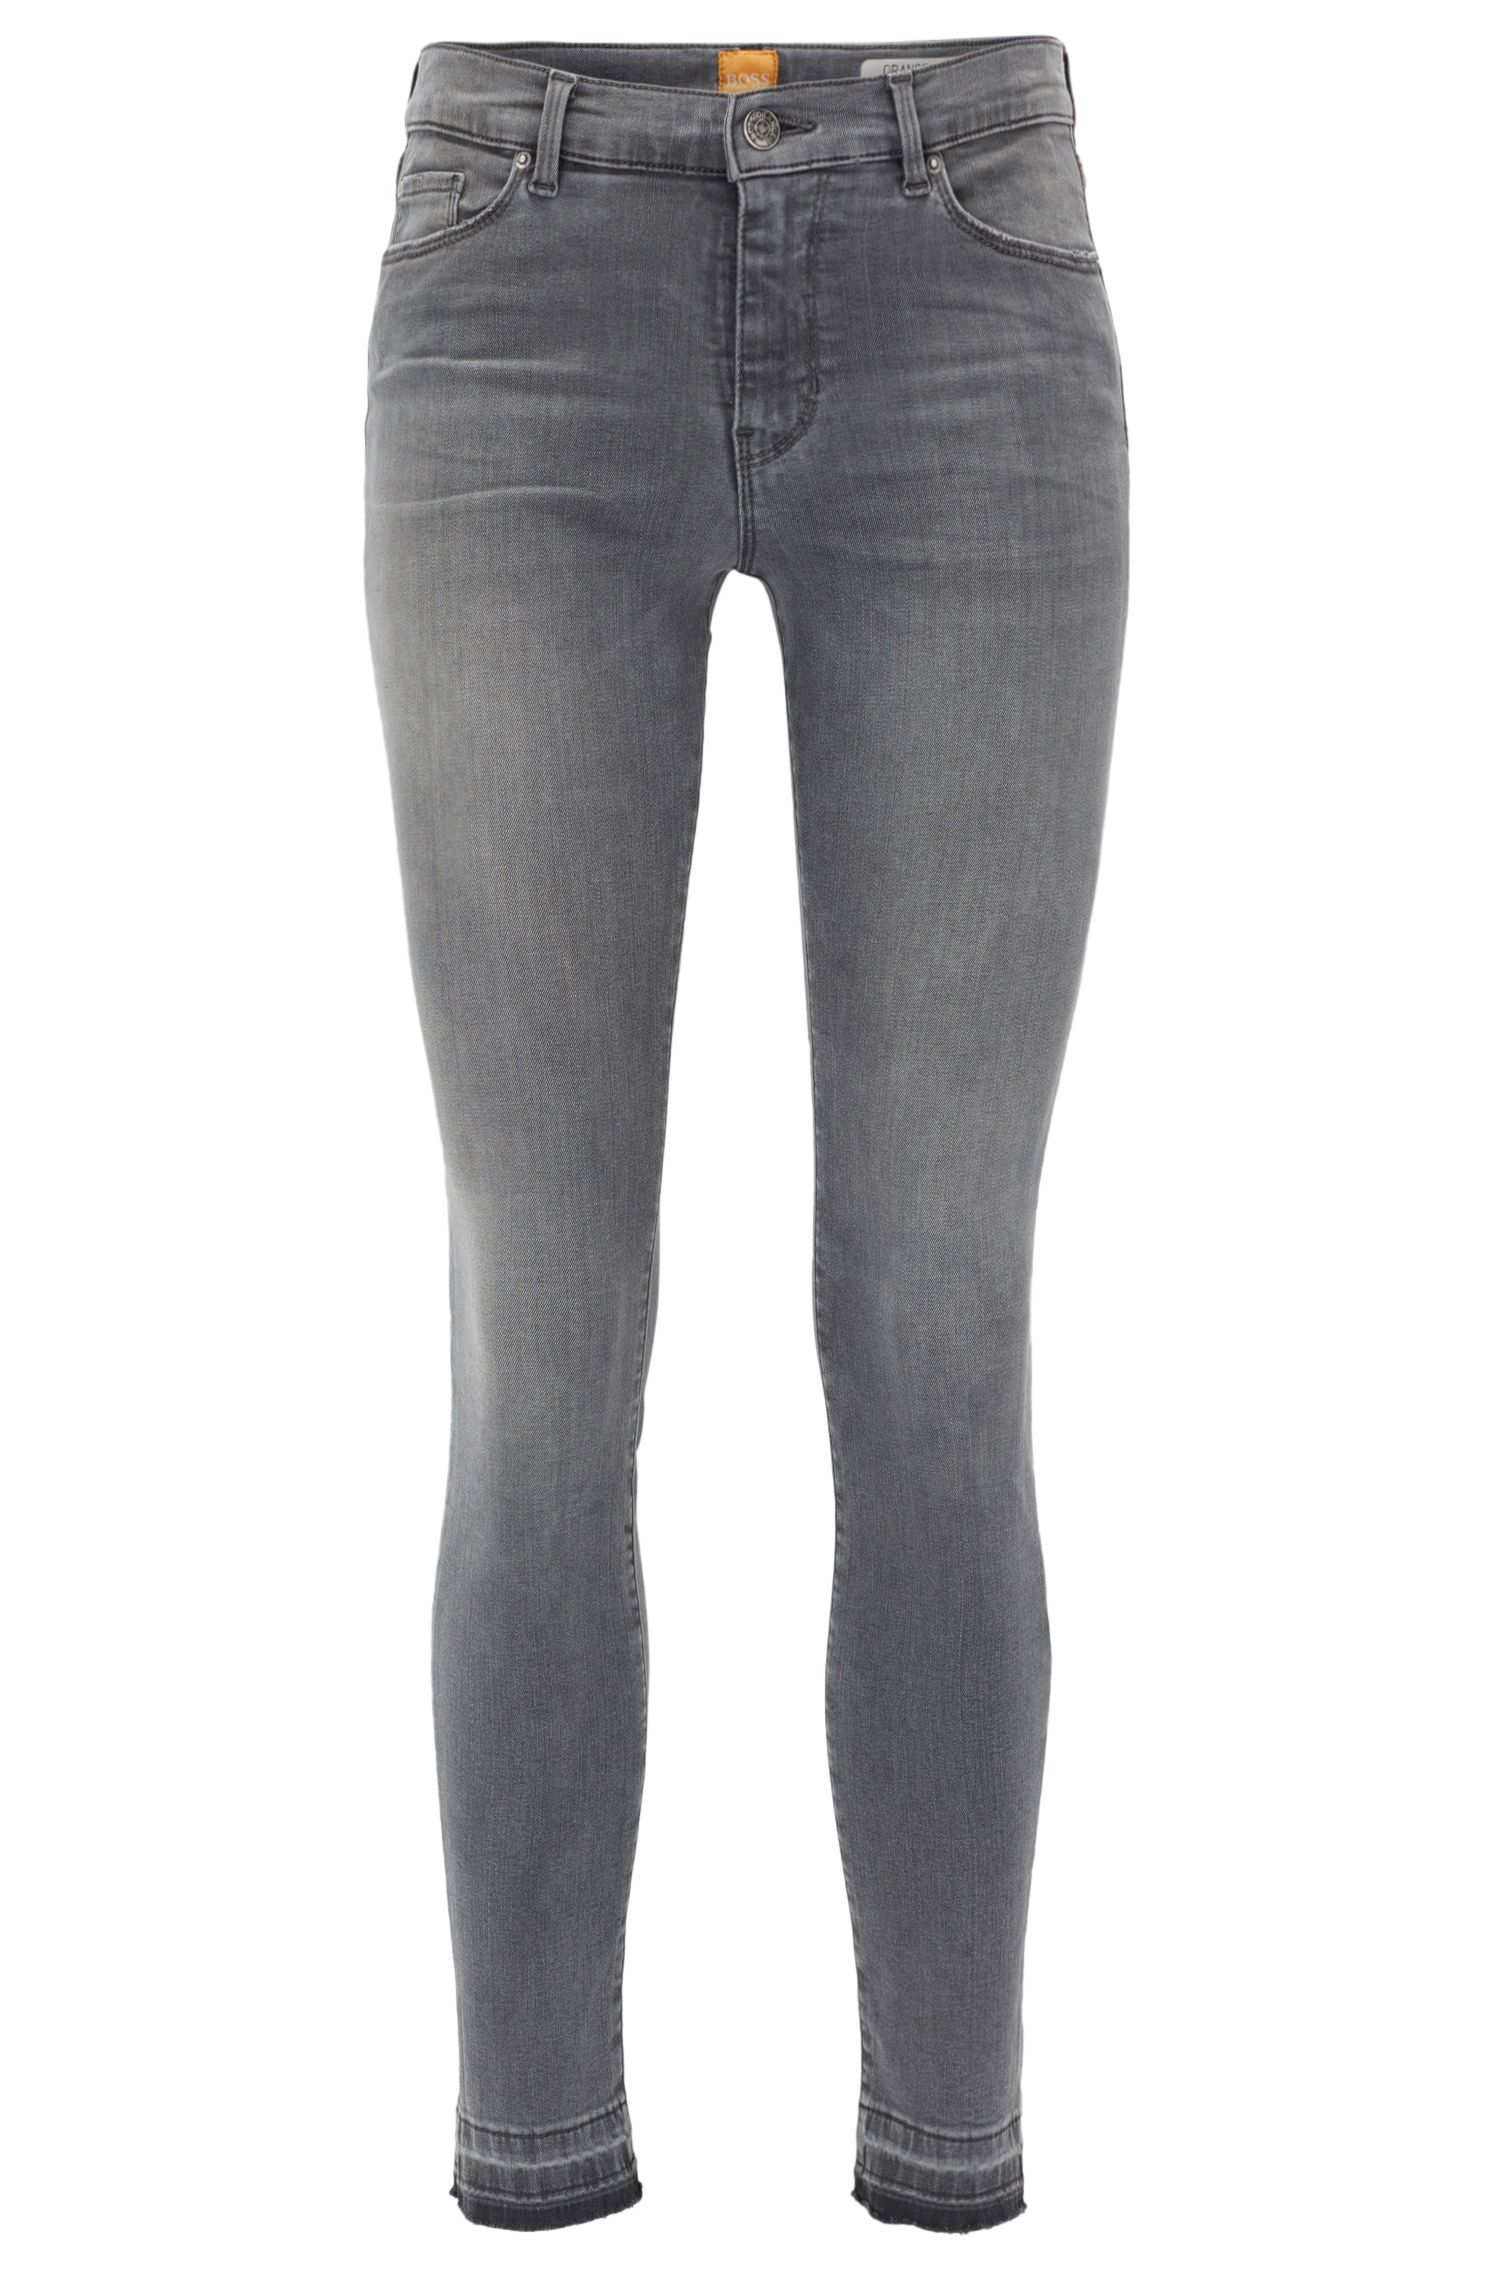 Jean raccourci Skinny Fit en denim power-stretch gris moyen